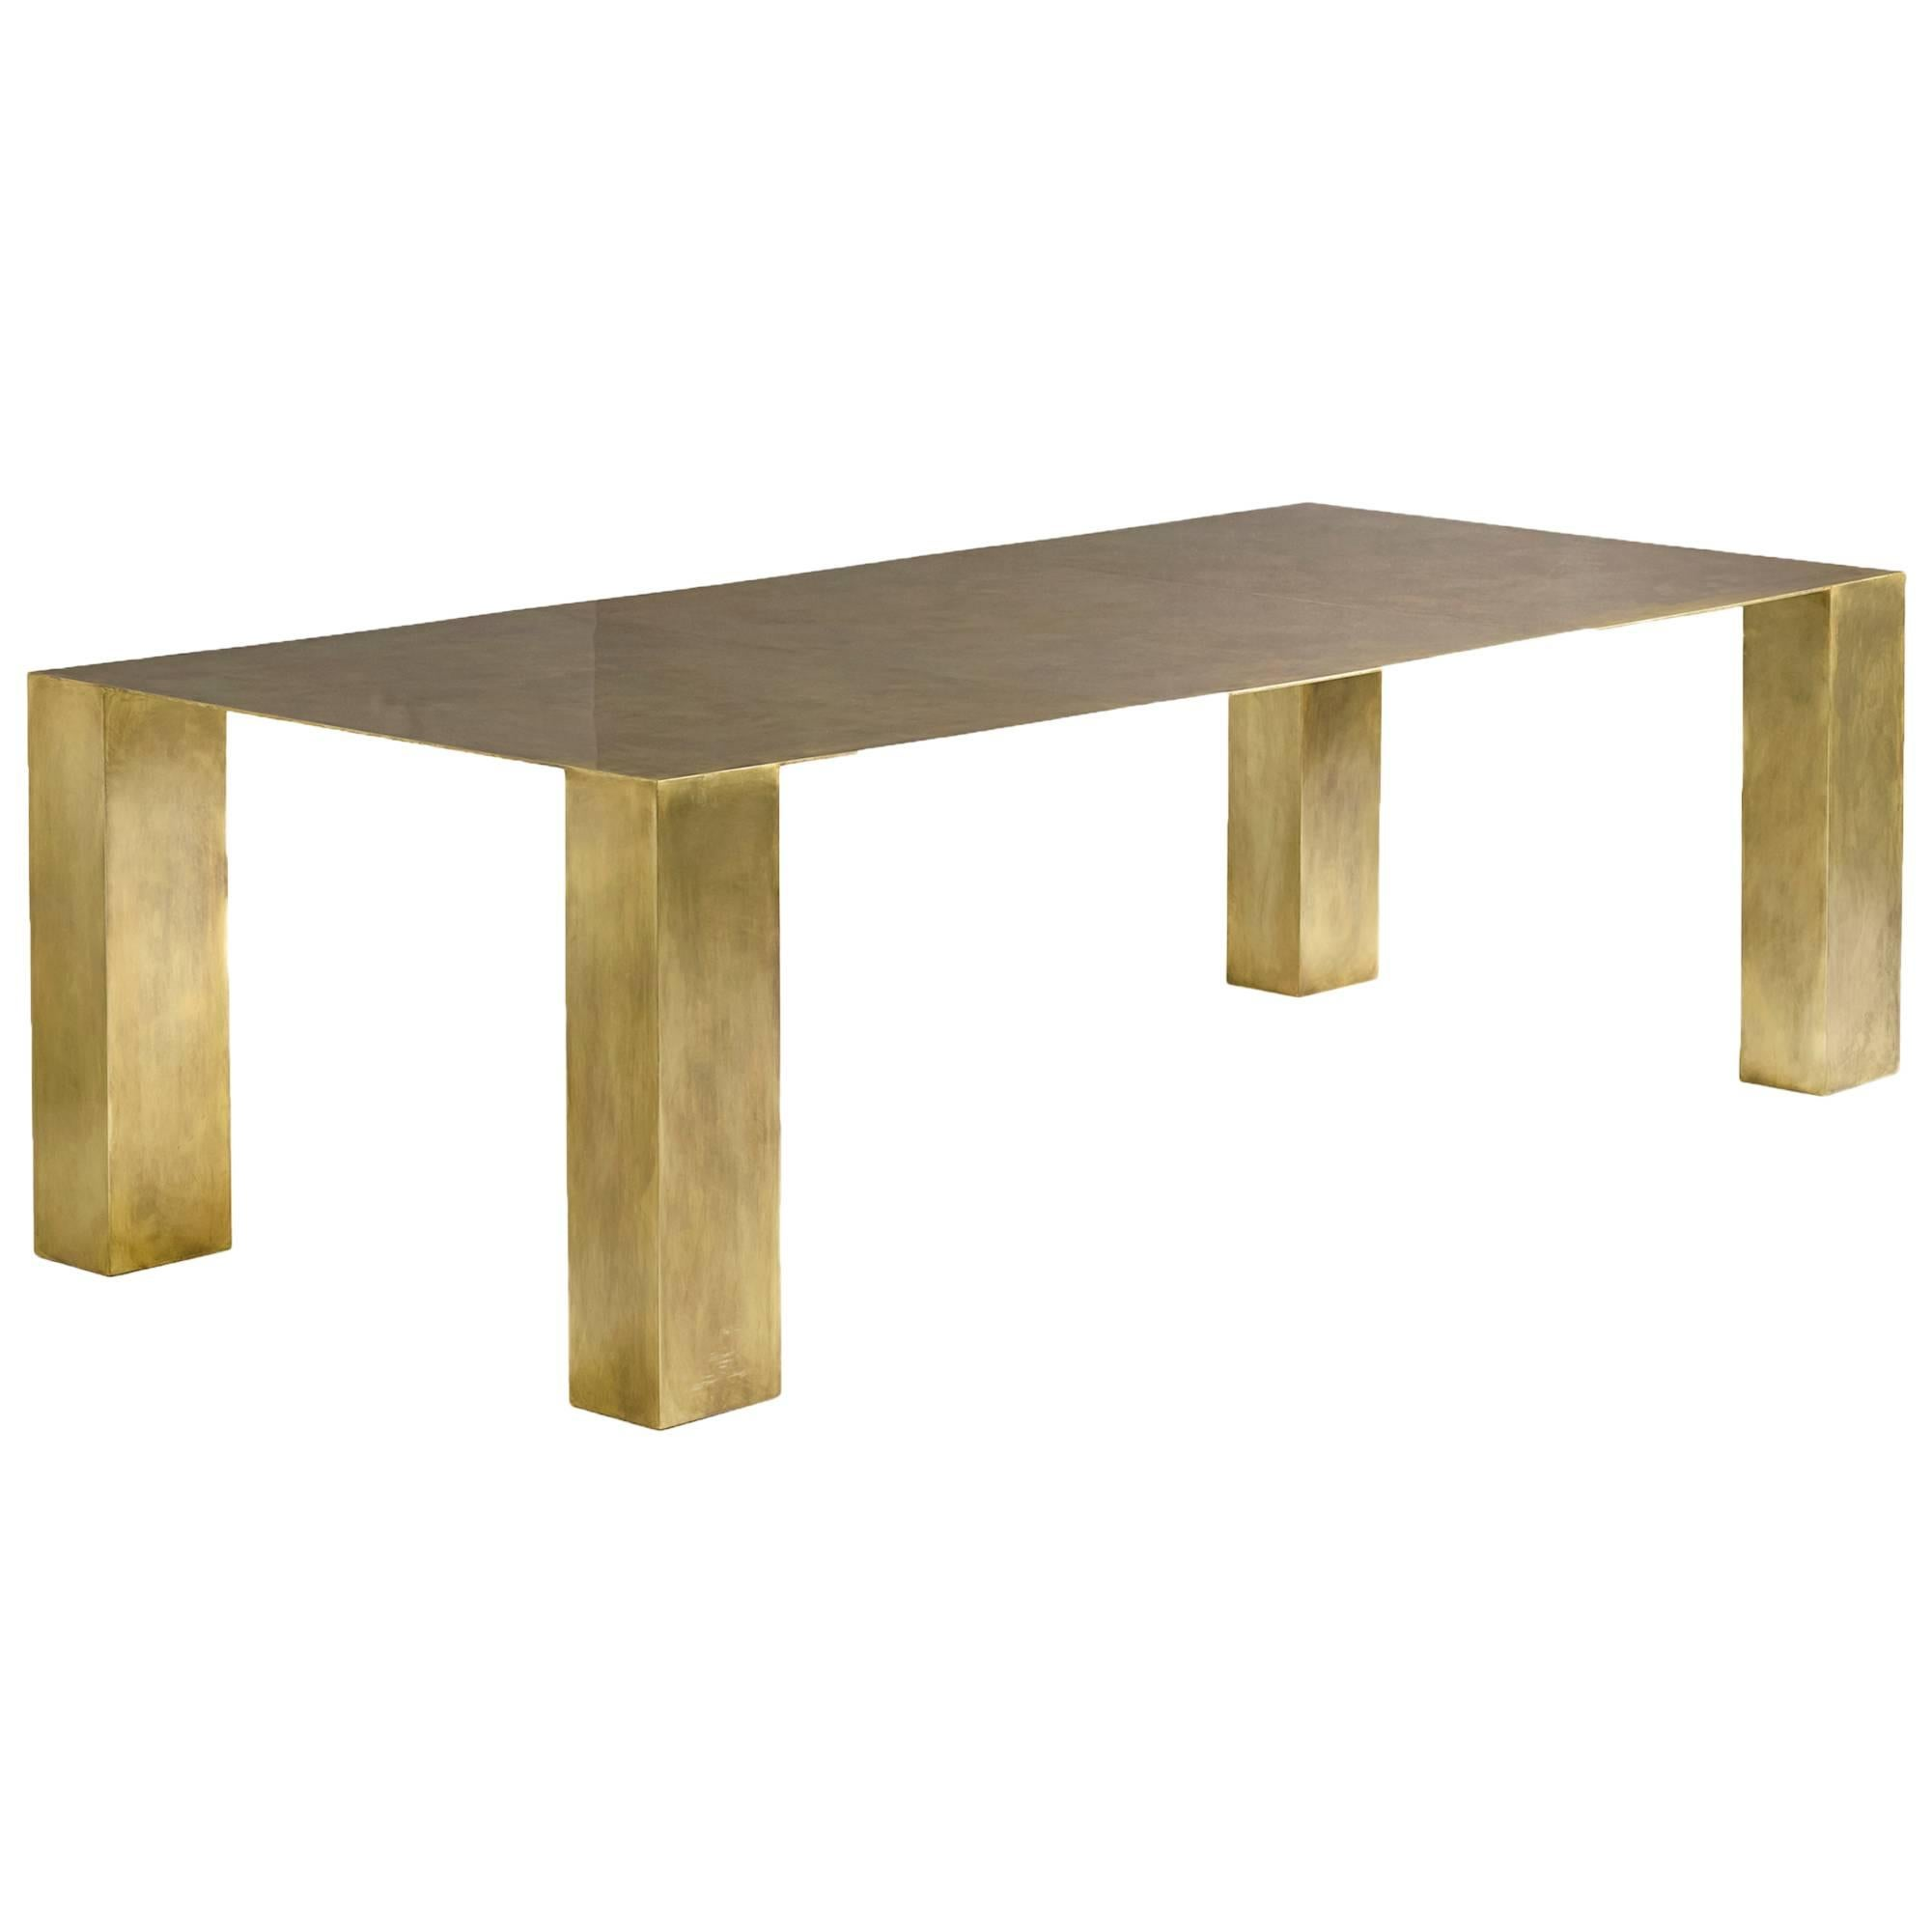 Brian Thoreen Modernist Brass Dining Table